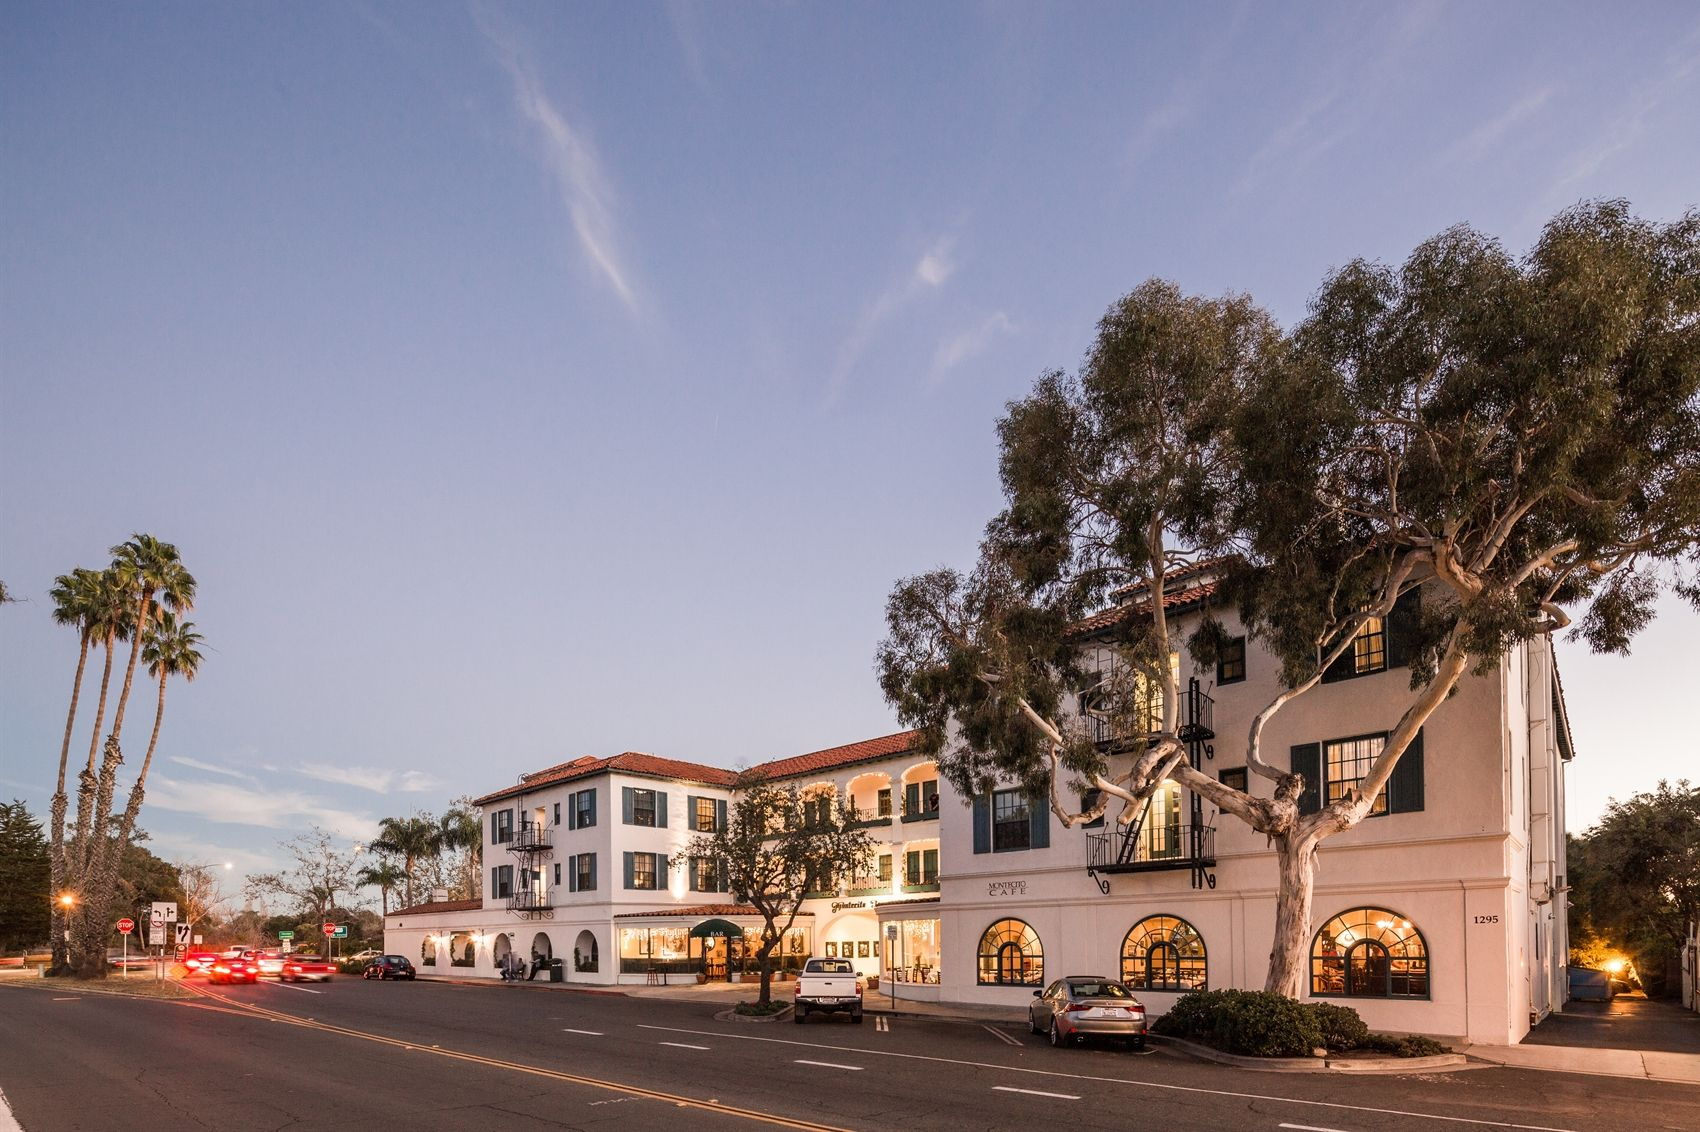 Request Information about our santa barbara luxury hotel